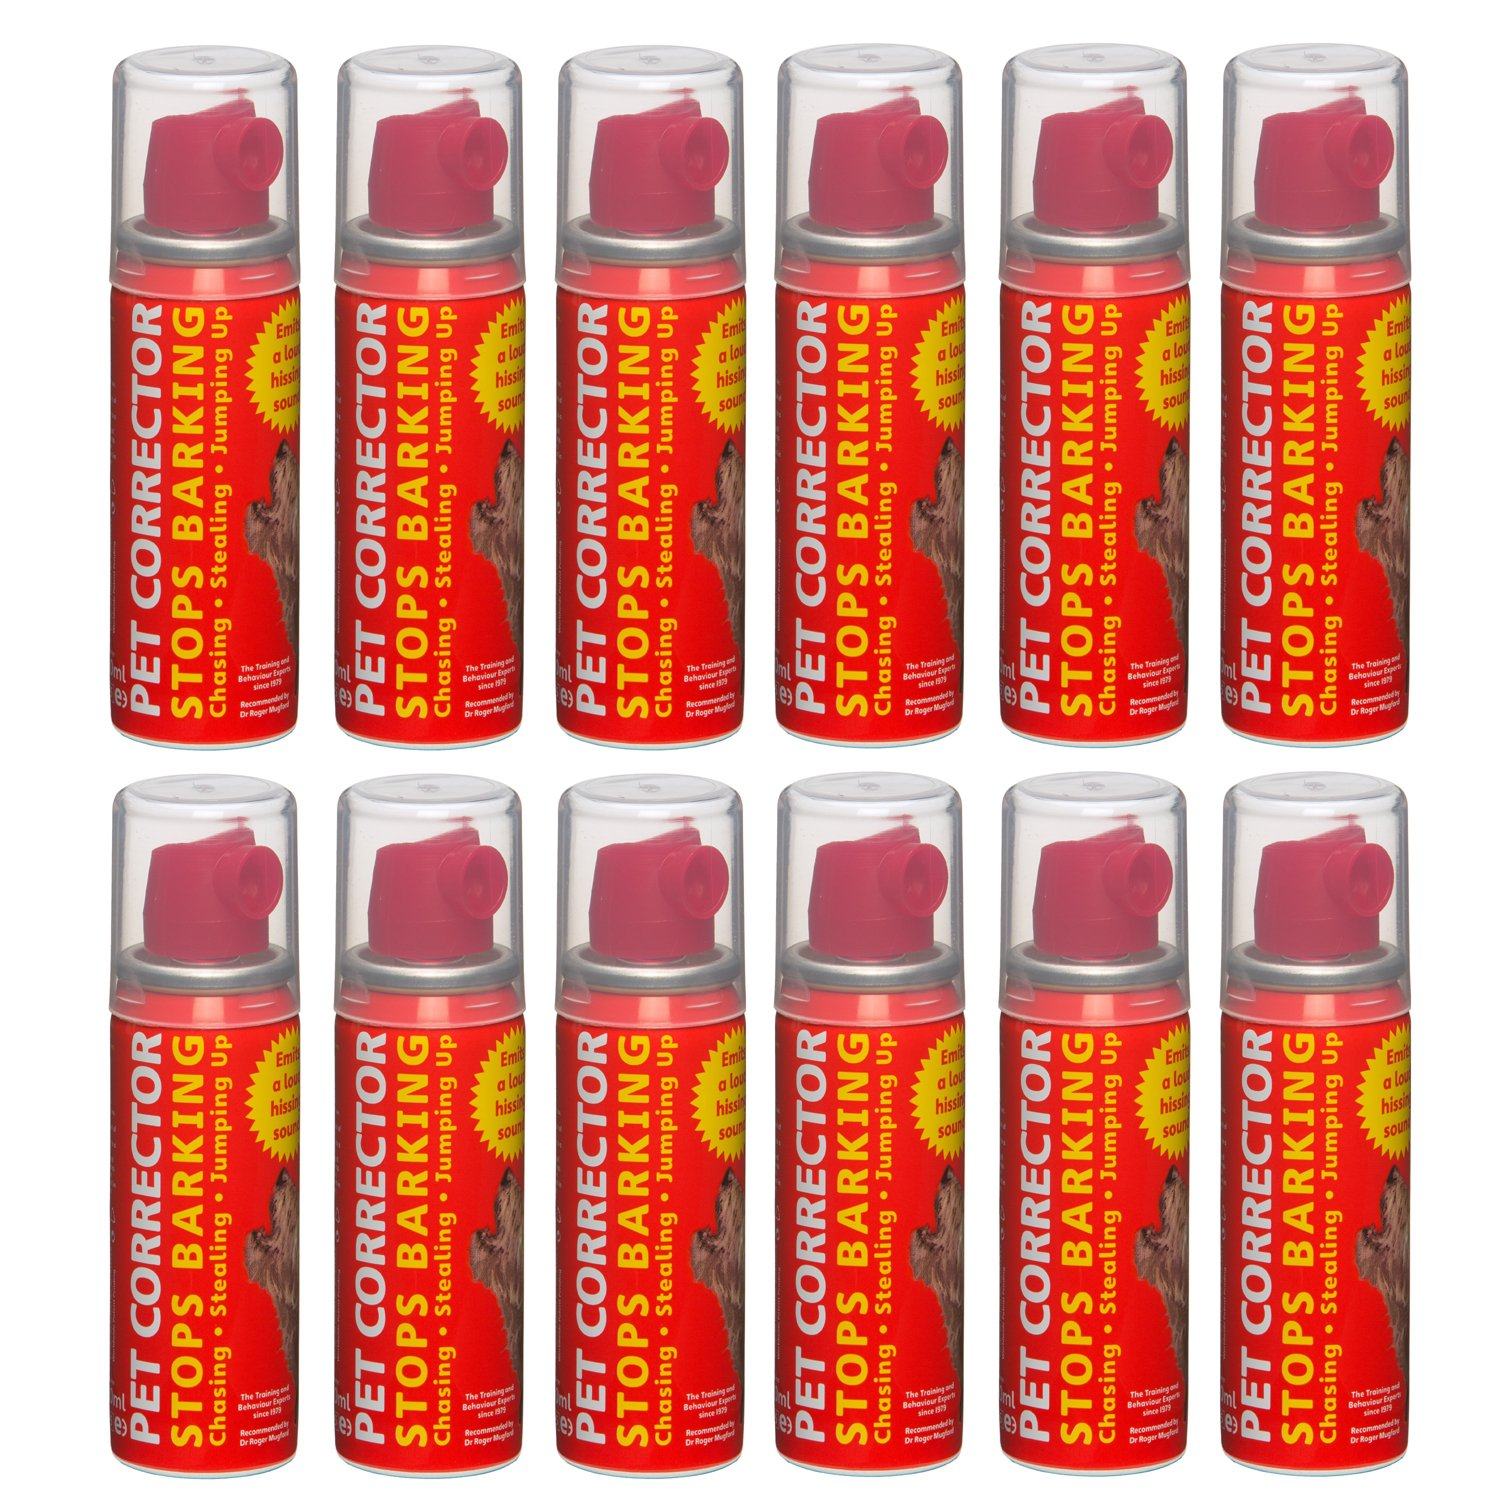 The Company of Animals Pet Corrector Bad Behavior and Training Aid - Quickly Stops Barking, Jumping, Digging, Chewing – Harmless and Safe- 30ml, Pack of 12